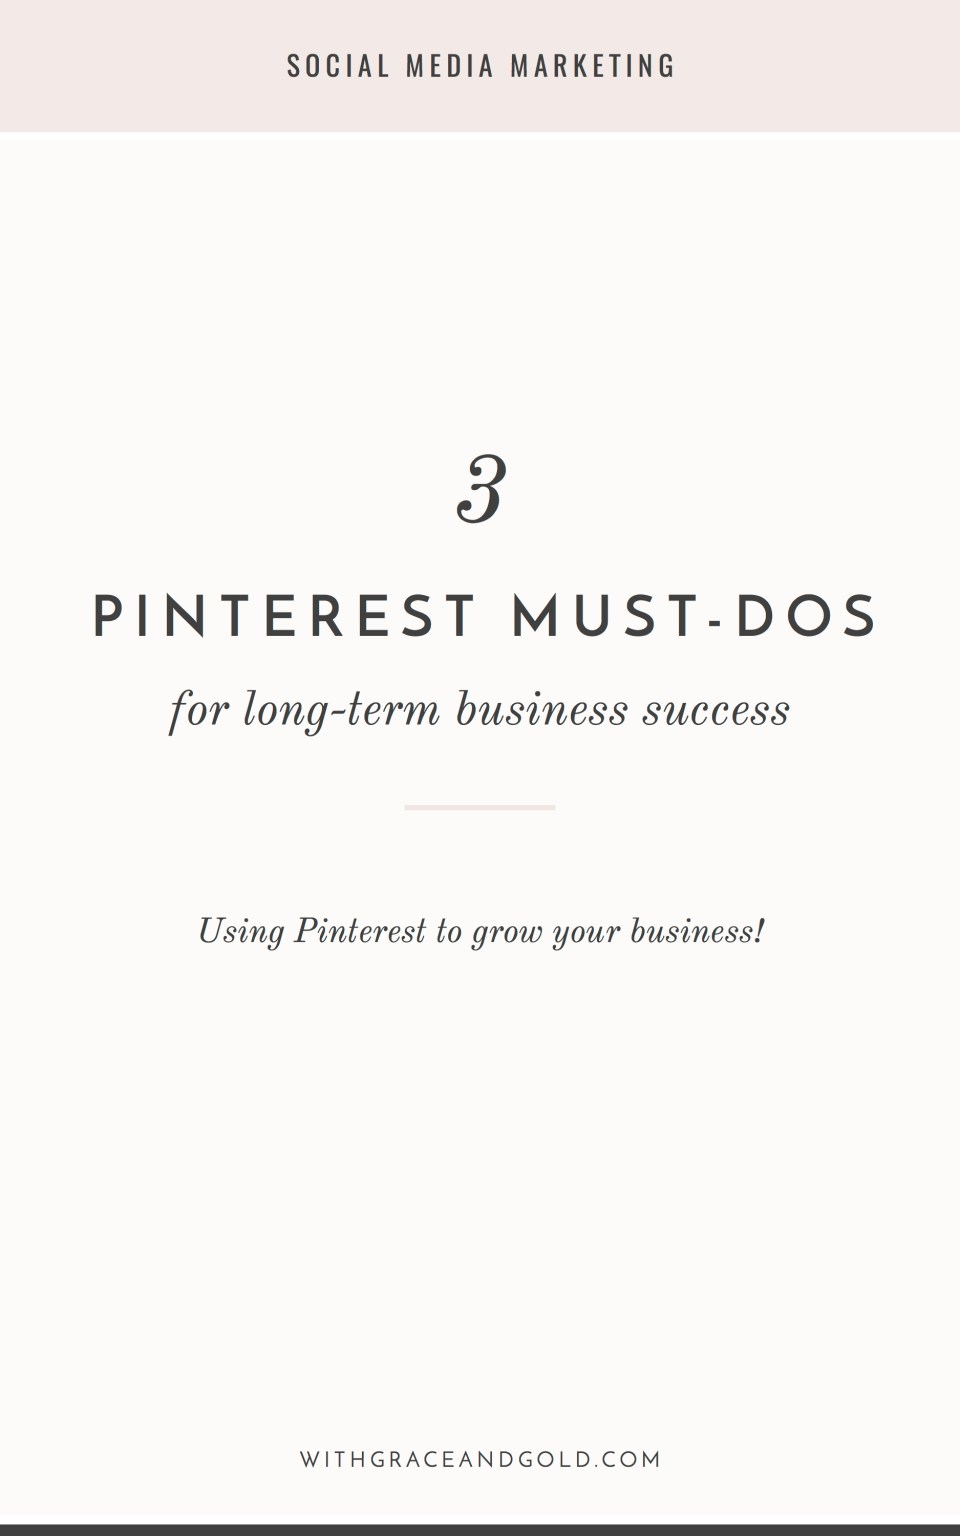 3 Pinterest Must-Dos for Long-Term Business Success